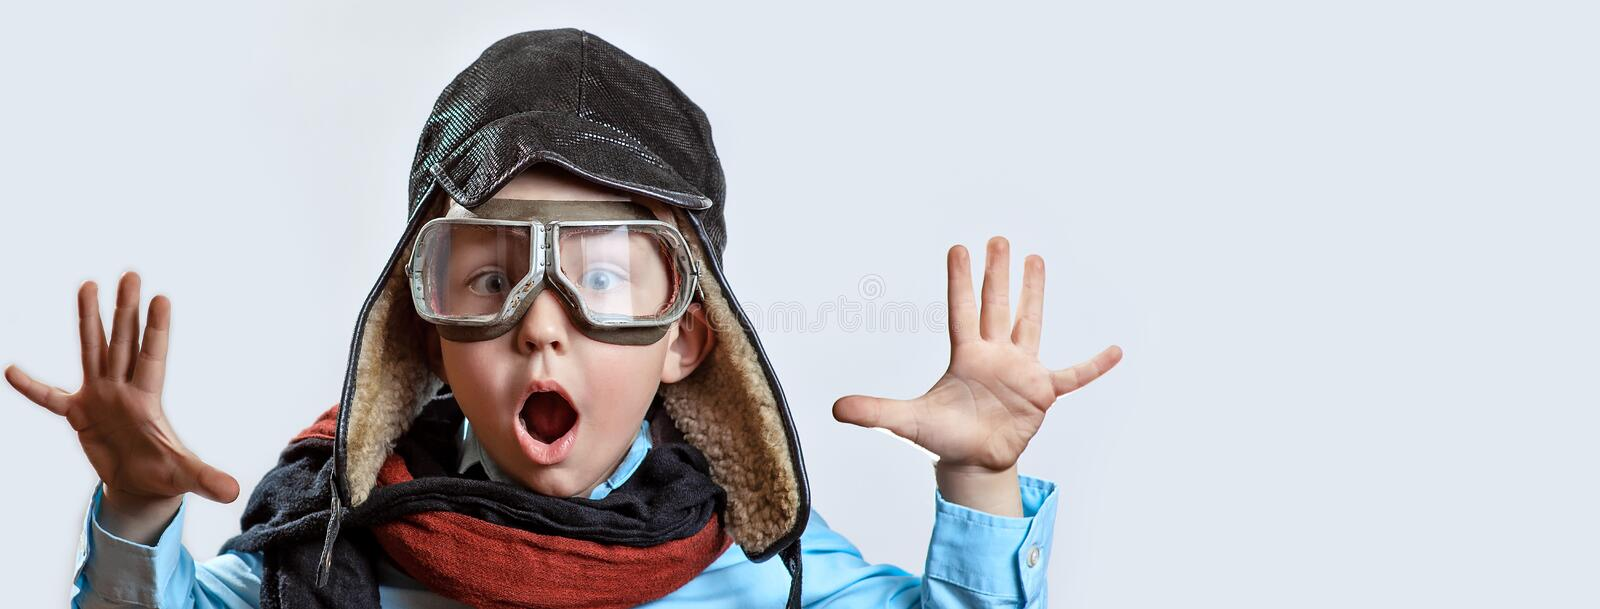 Boy in a blue shirt, pilot`s glasses, hat and scarf raised his hands on a light background. A boy in a blue shirt, pilot`s glasses, hat and scarf raised his royalty free stock photo